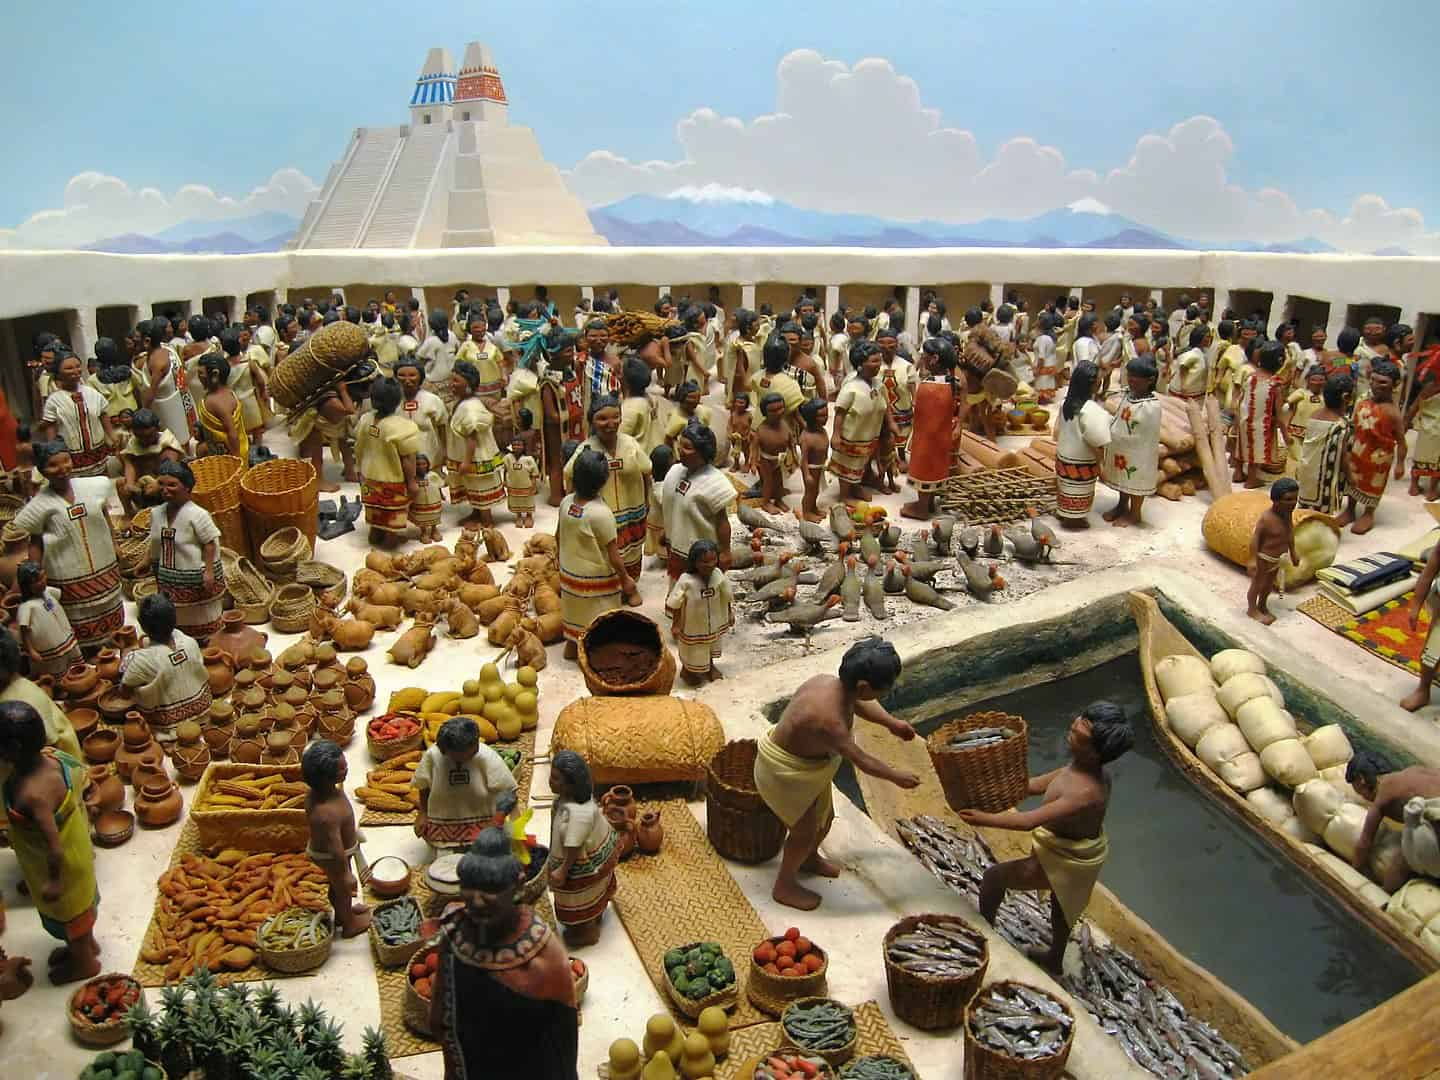 aztec market, aztec facts